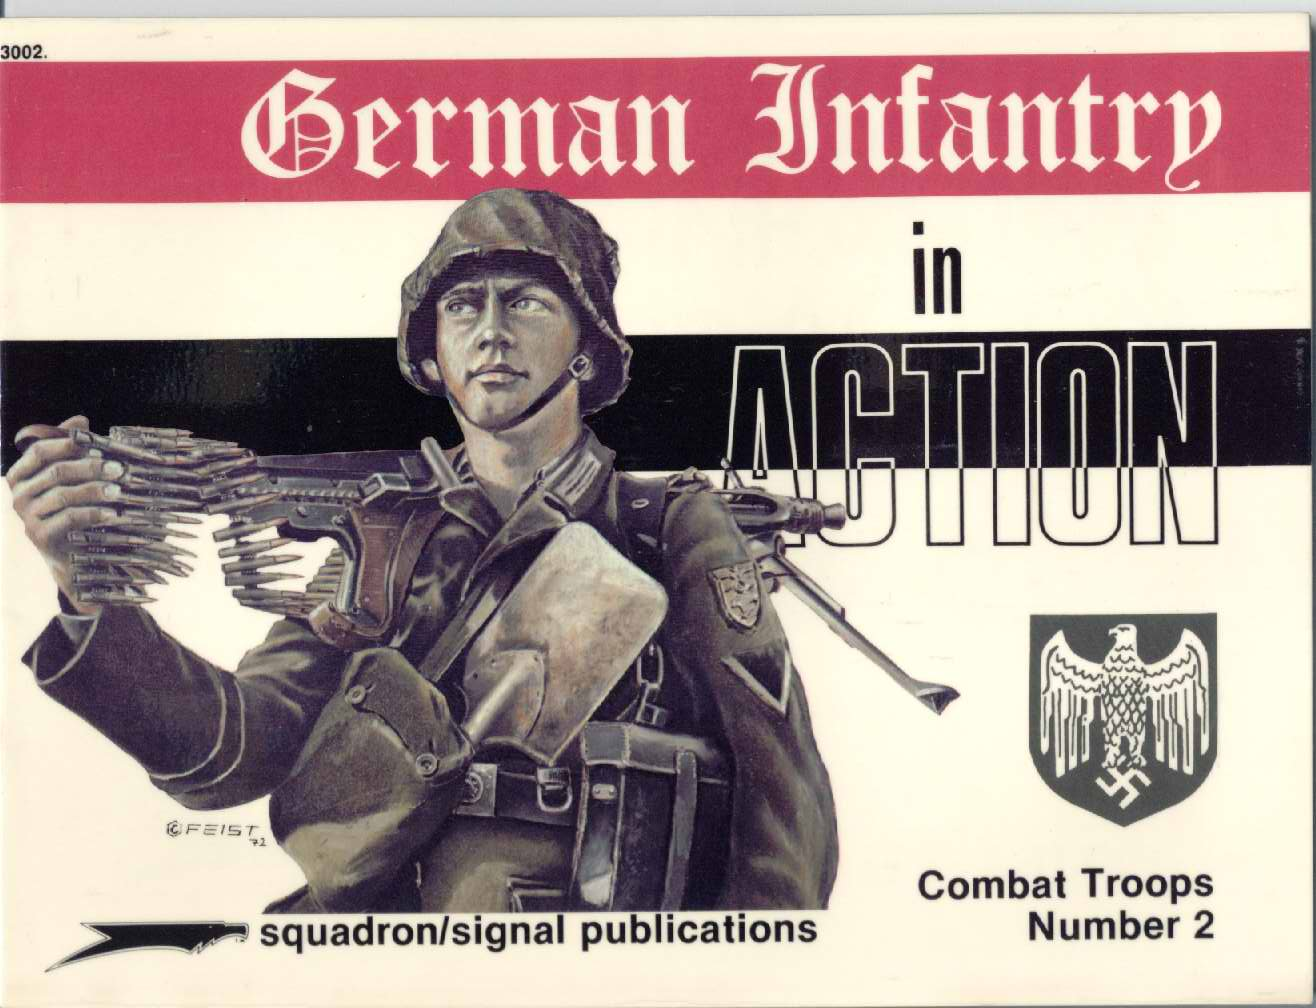 Squadron Signal 3002 German Infantry in Action_Страница_01.jpg